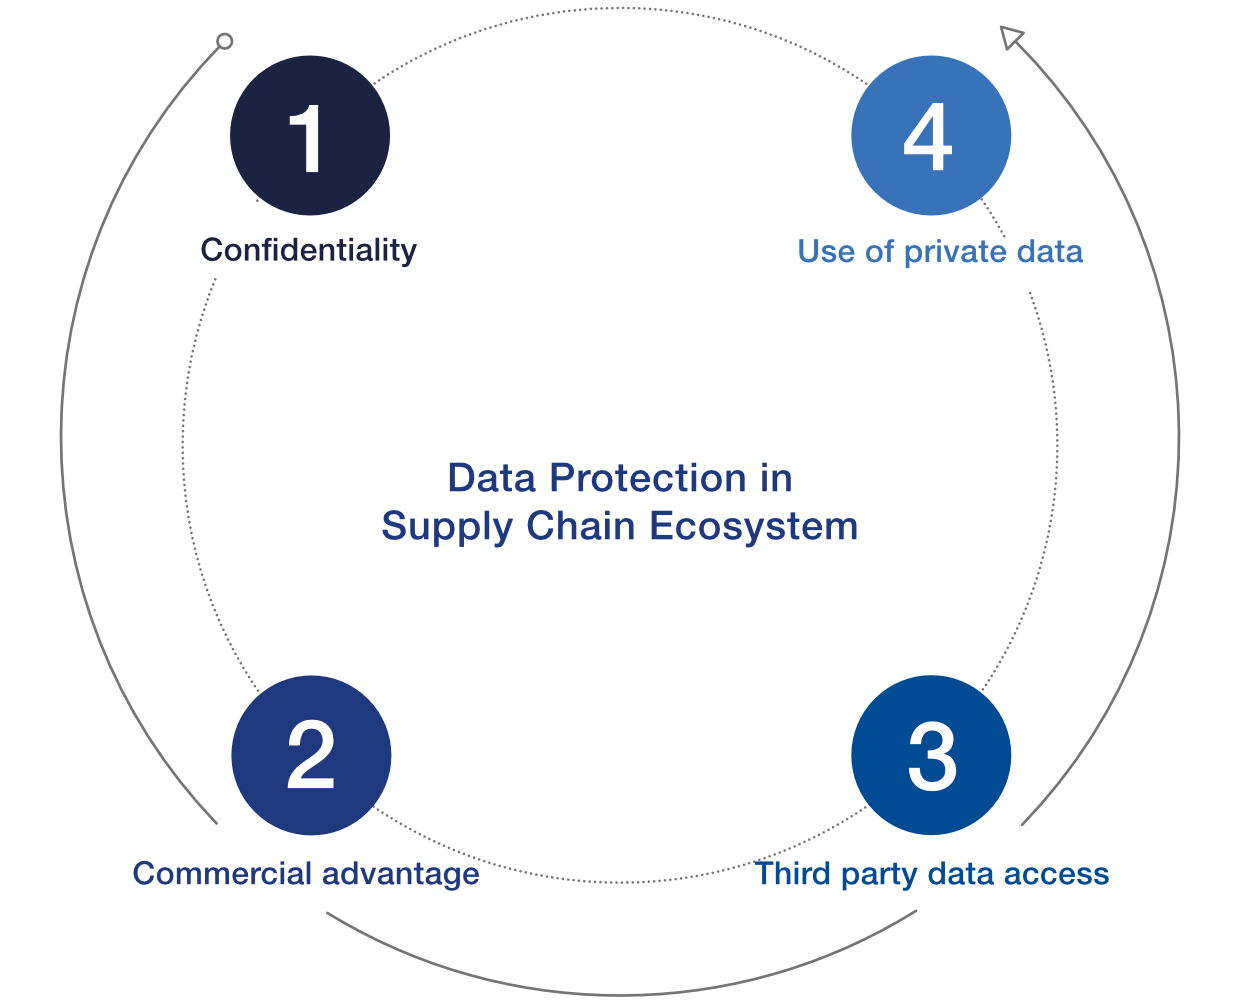 Key points to investigate in protecting data